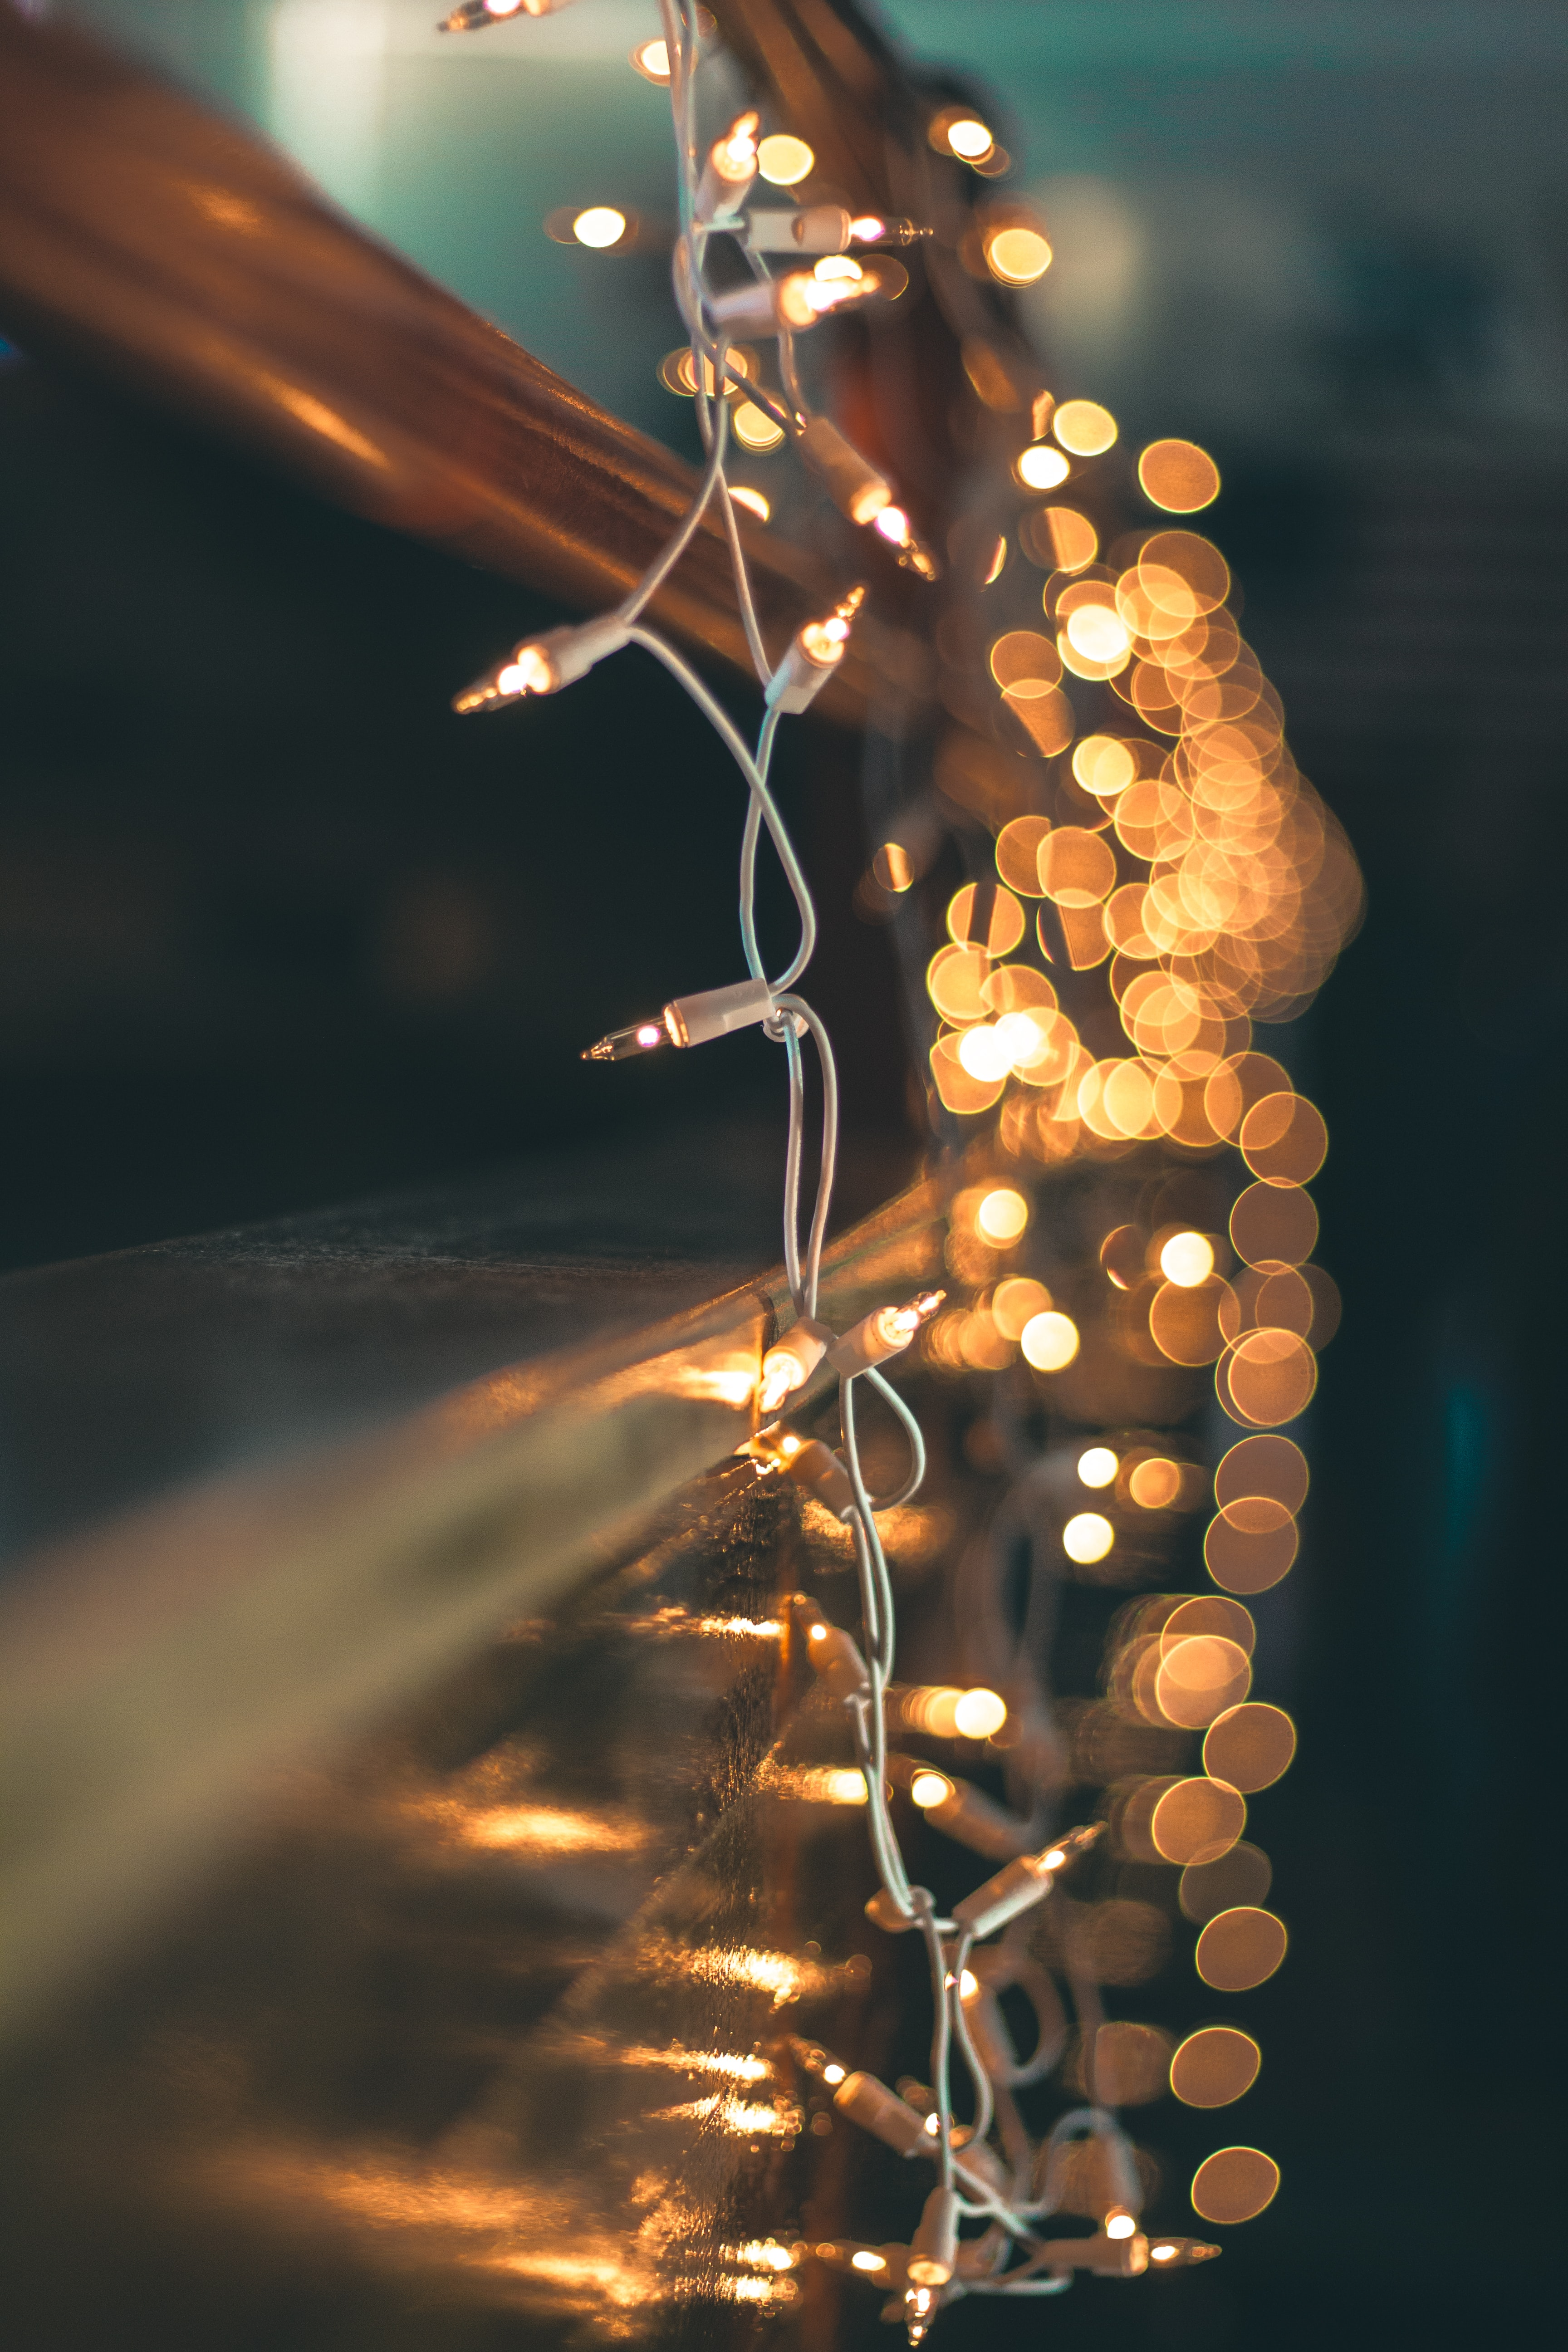 20 Best Free Fairy Lights Pictures On Unsplash